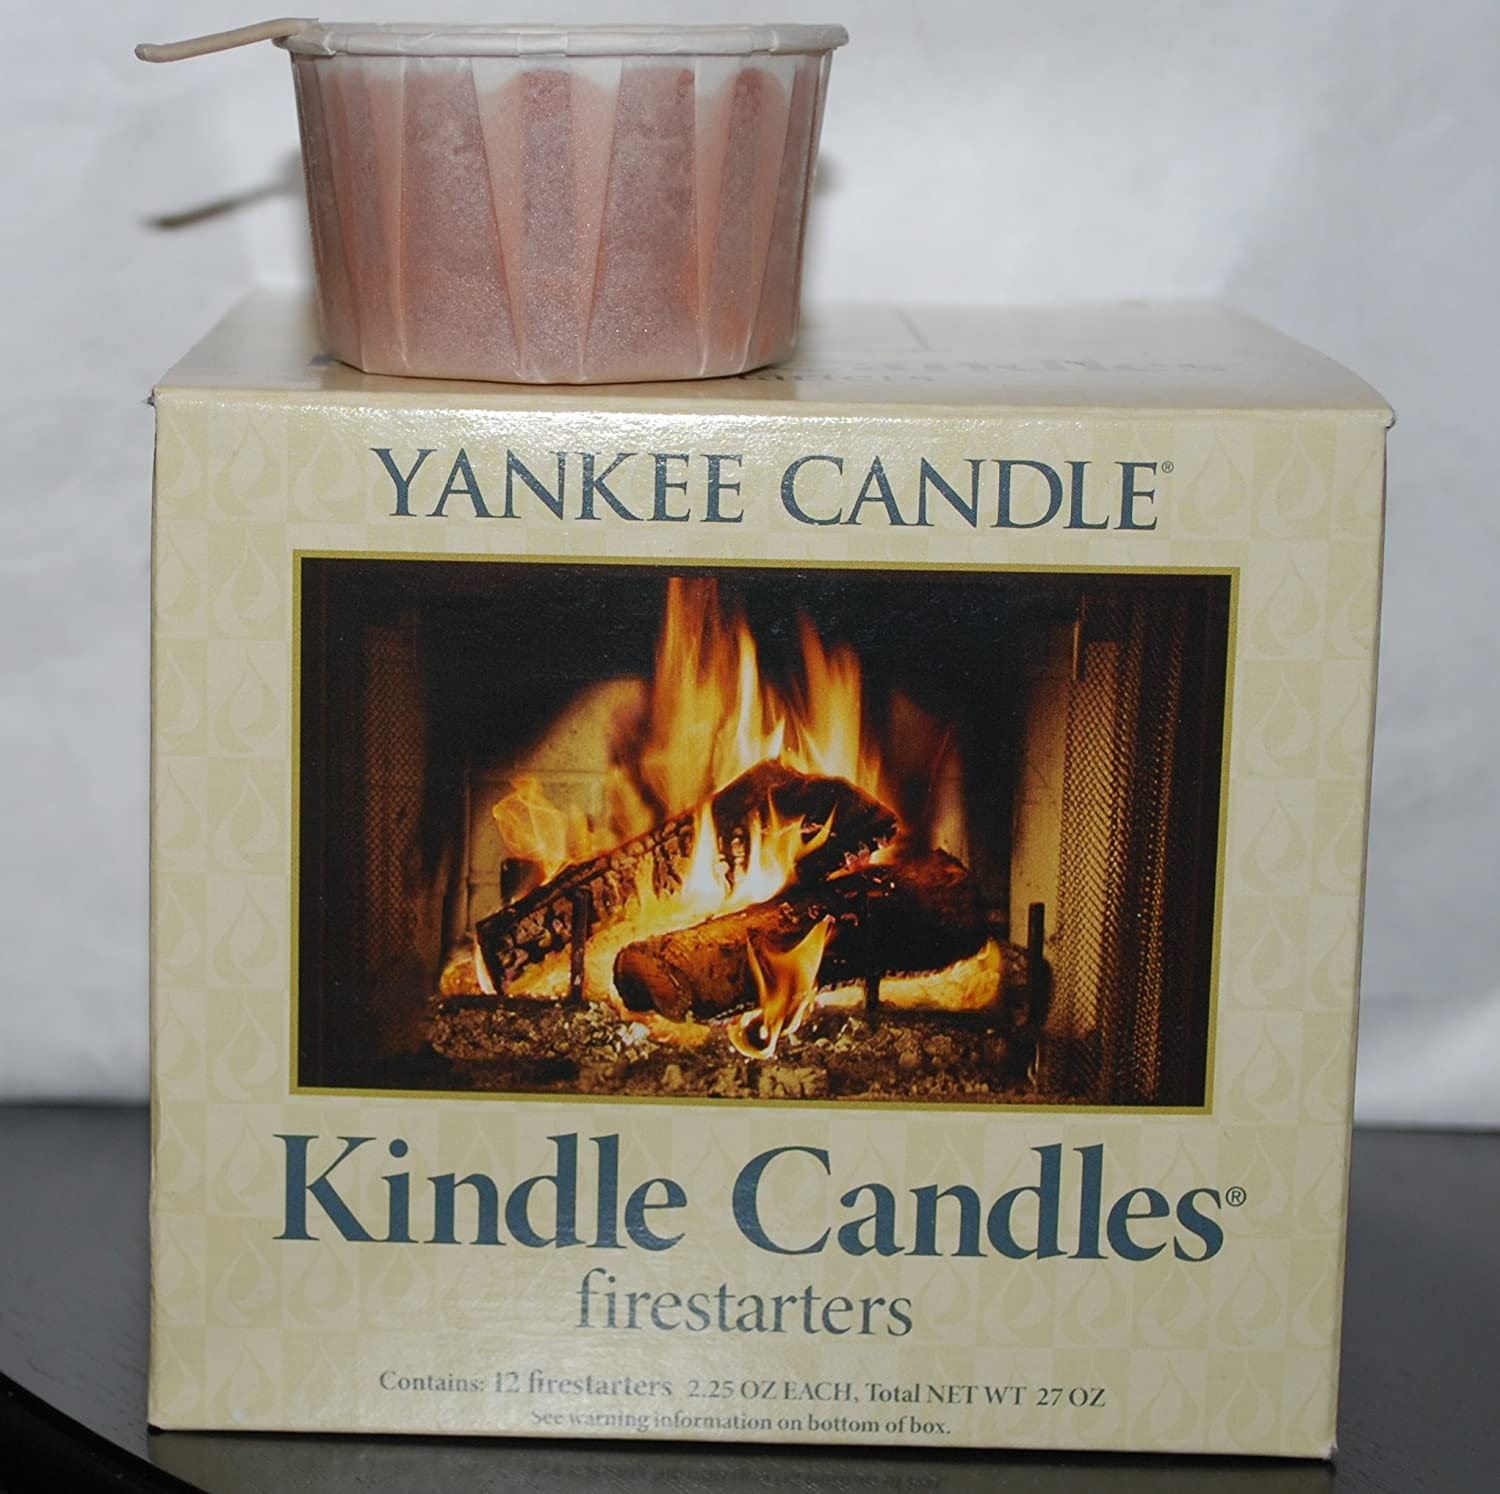 Best Kindle Candle 12-pack - Yankee at cheap price